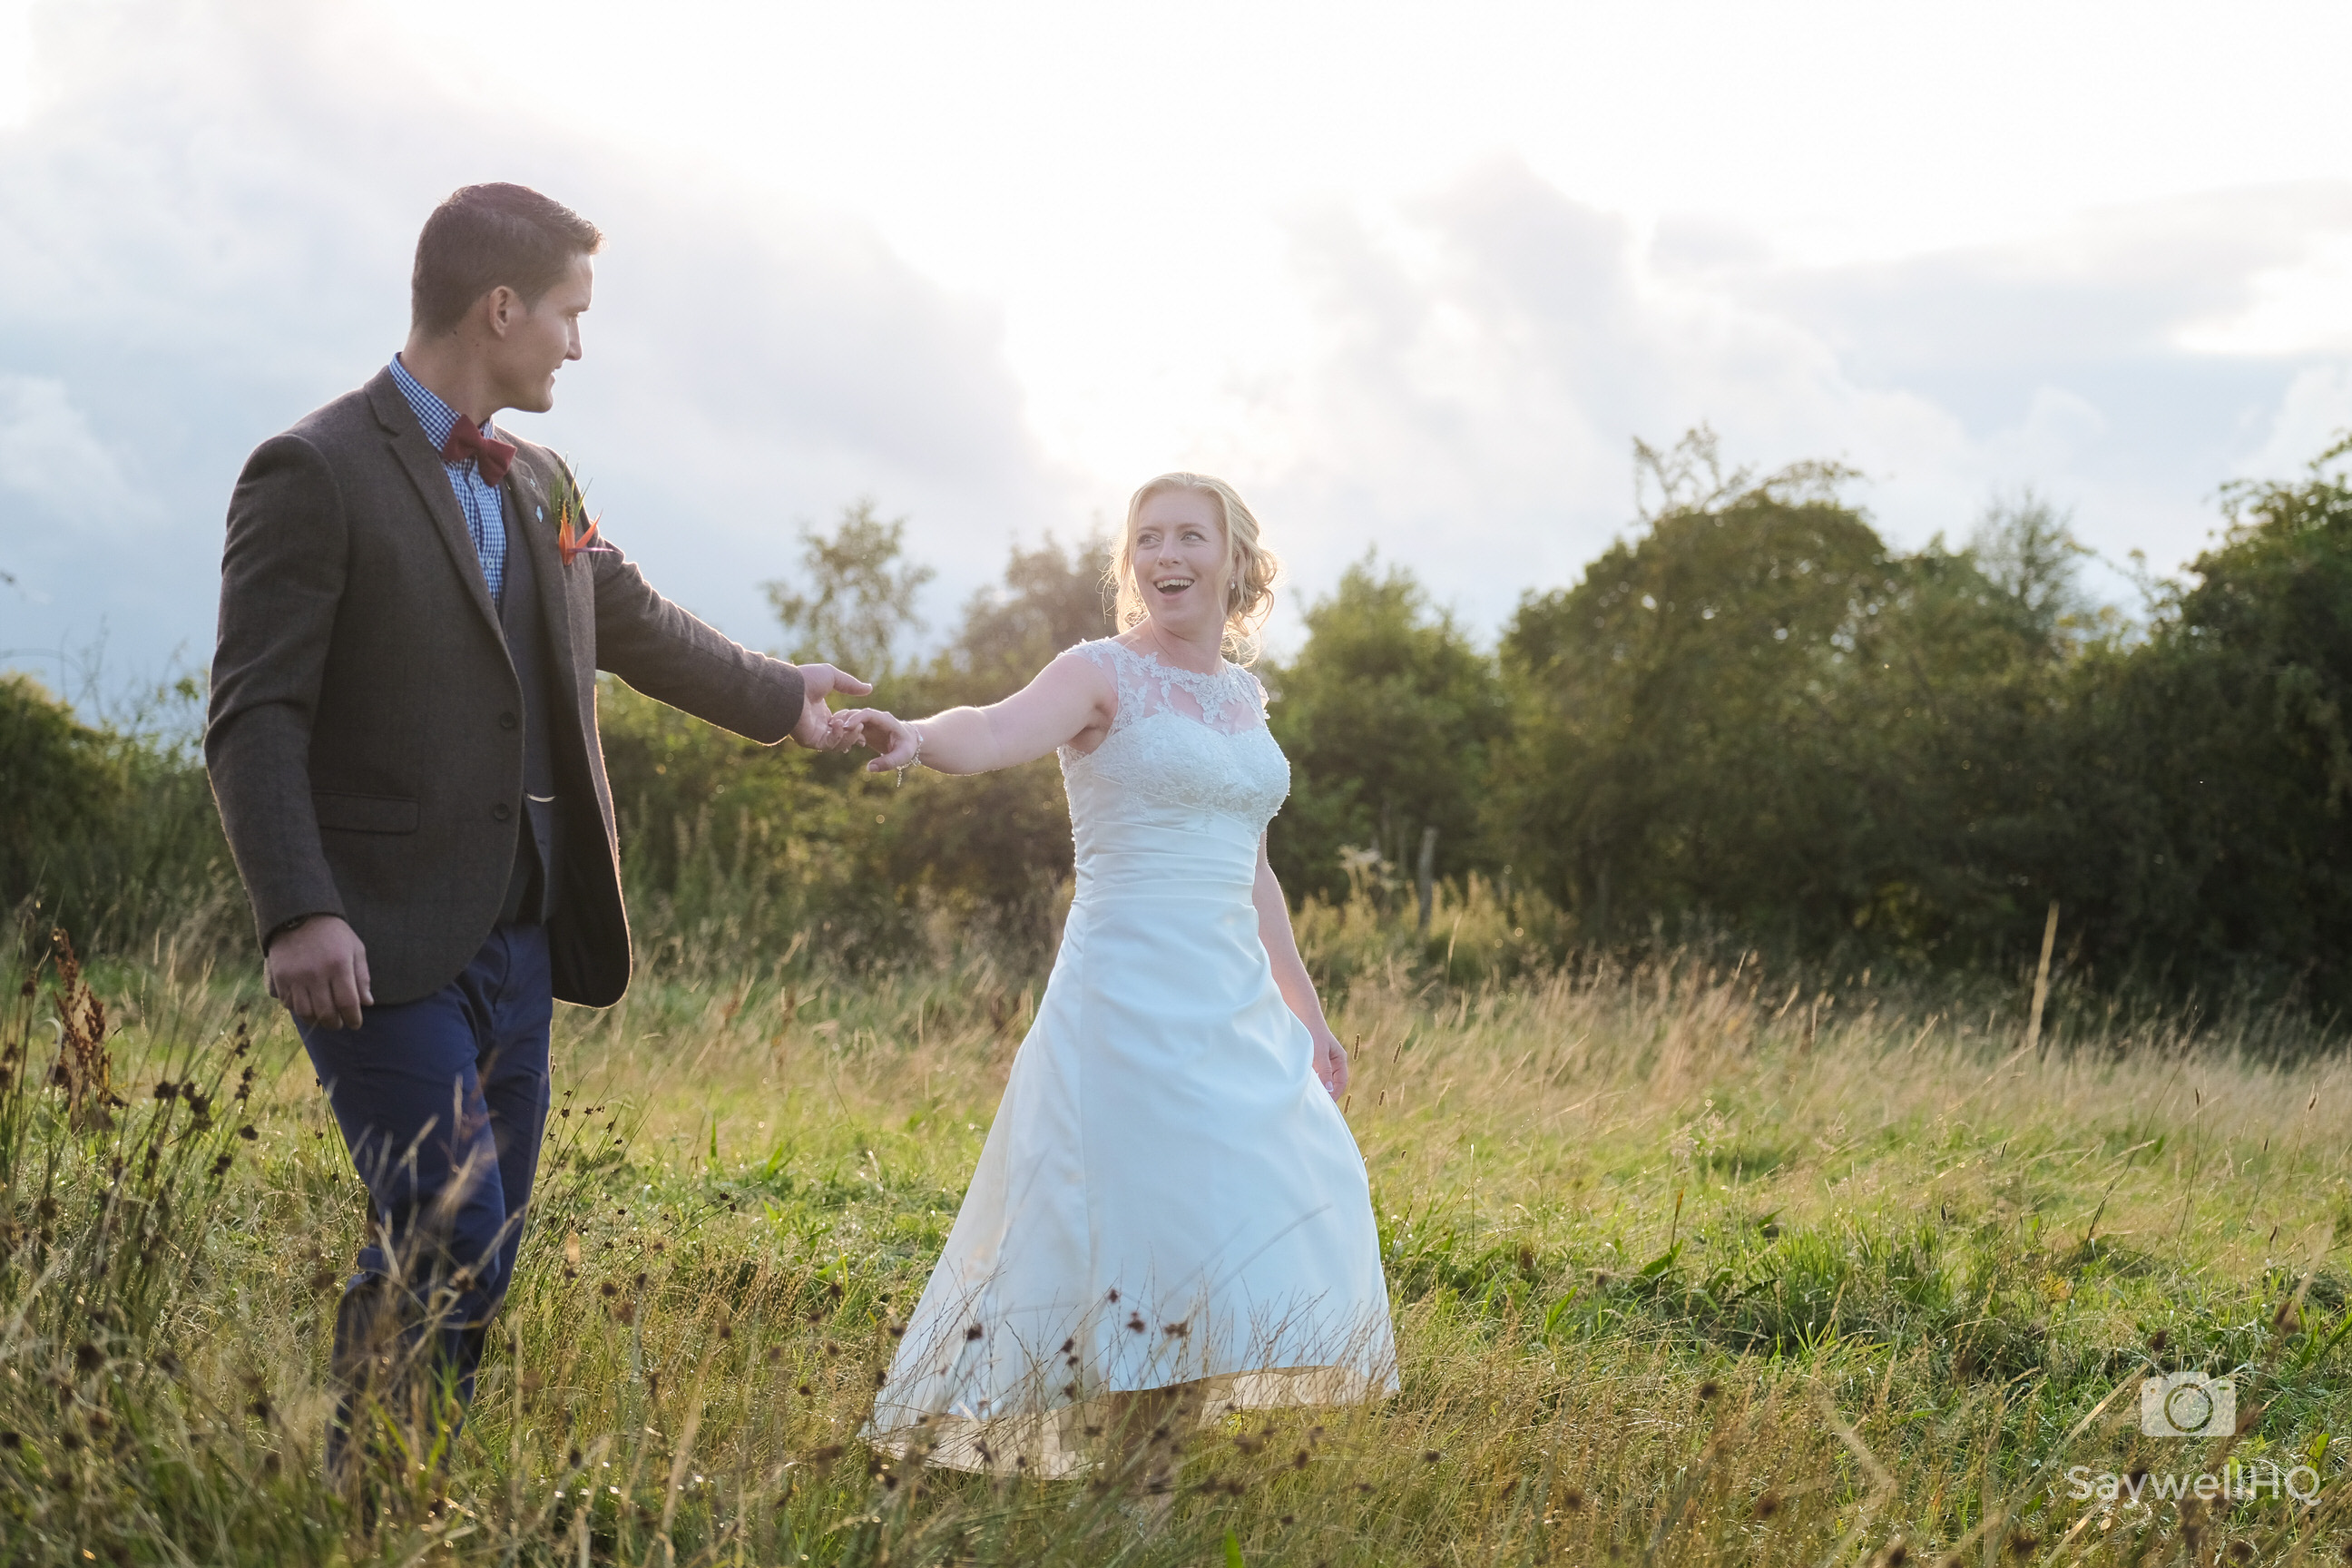 Humanist Wedding Photography at Sycamore Farm Barns in Derbyshire - Bride and groom walking